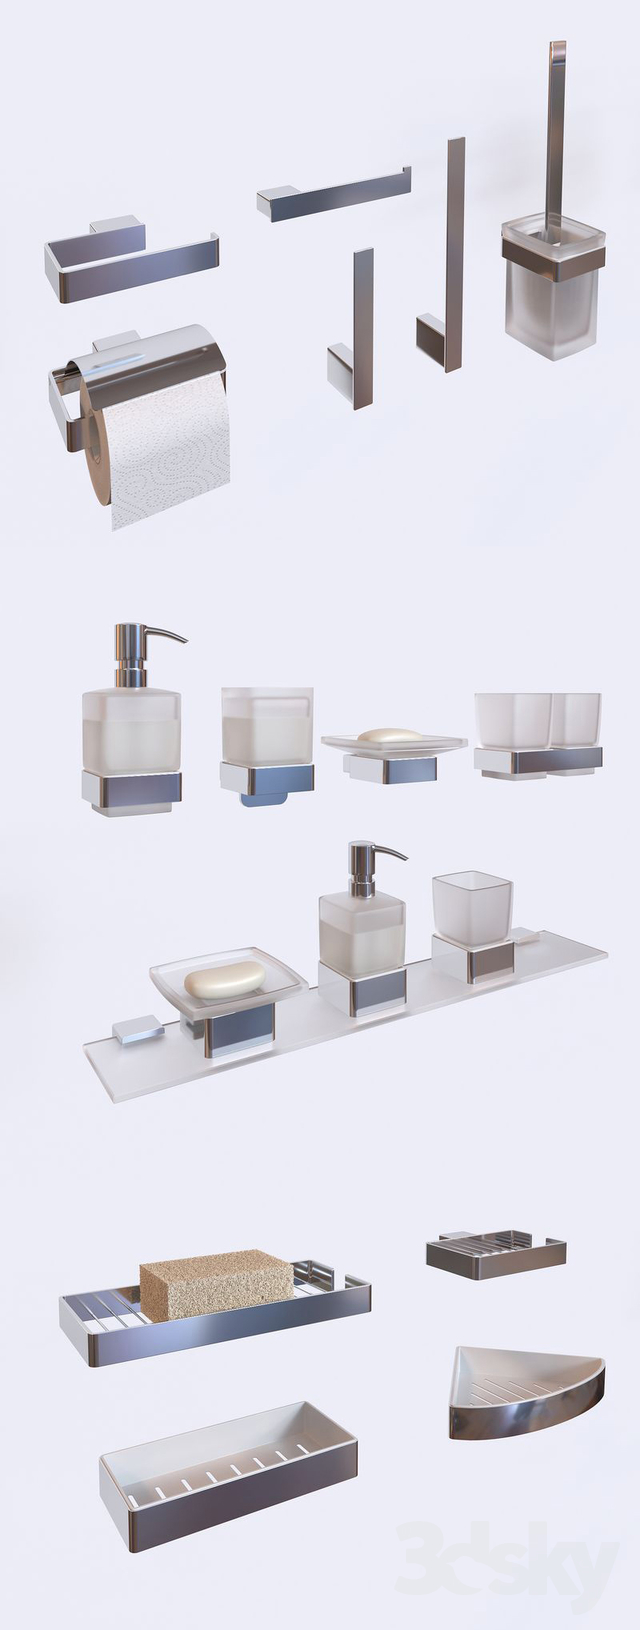 3d models: Bathroom accessories - EMCO Accessories Set // Loft